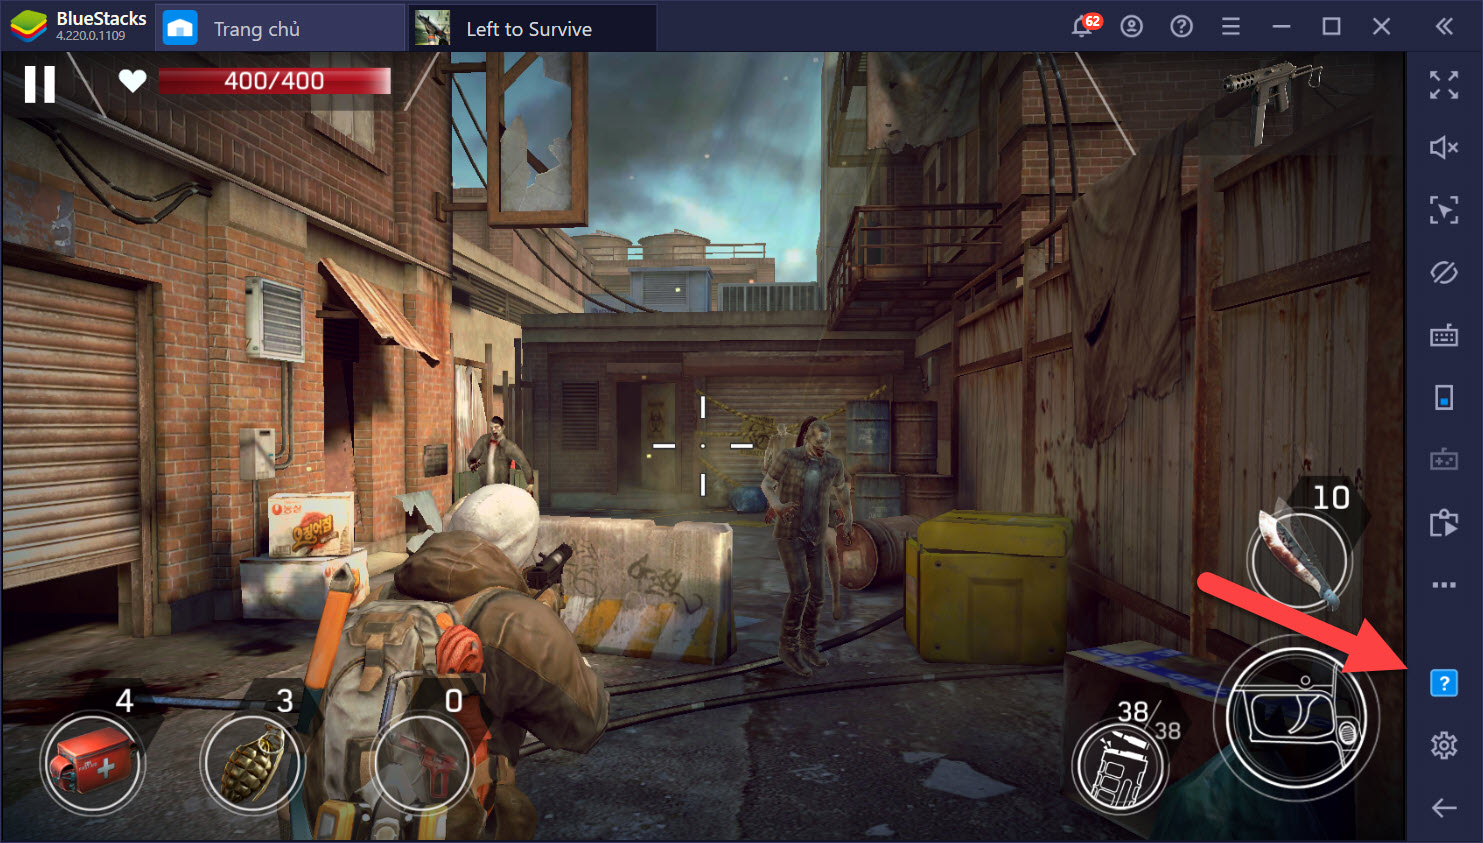 Thiết lập Game Controls cho Left to Survive: Dead Zombie